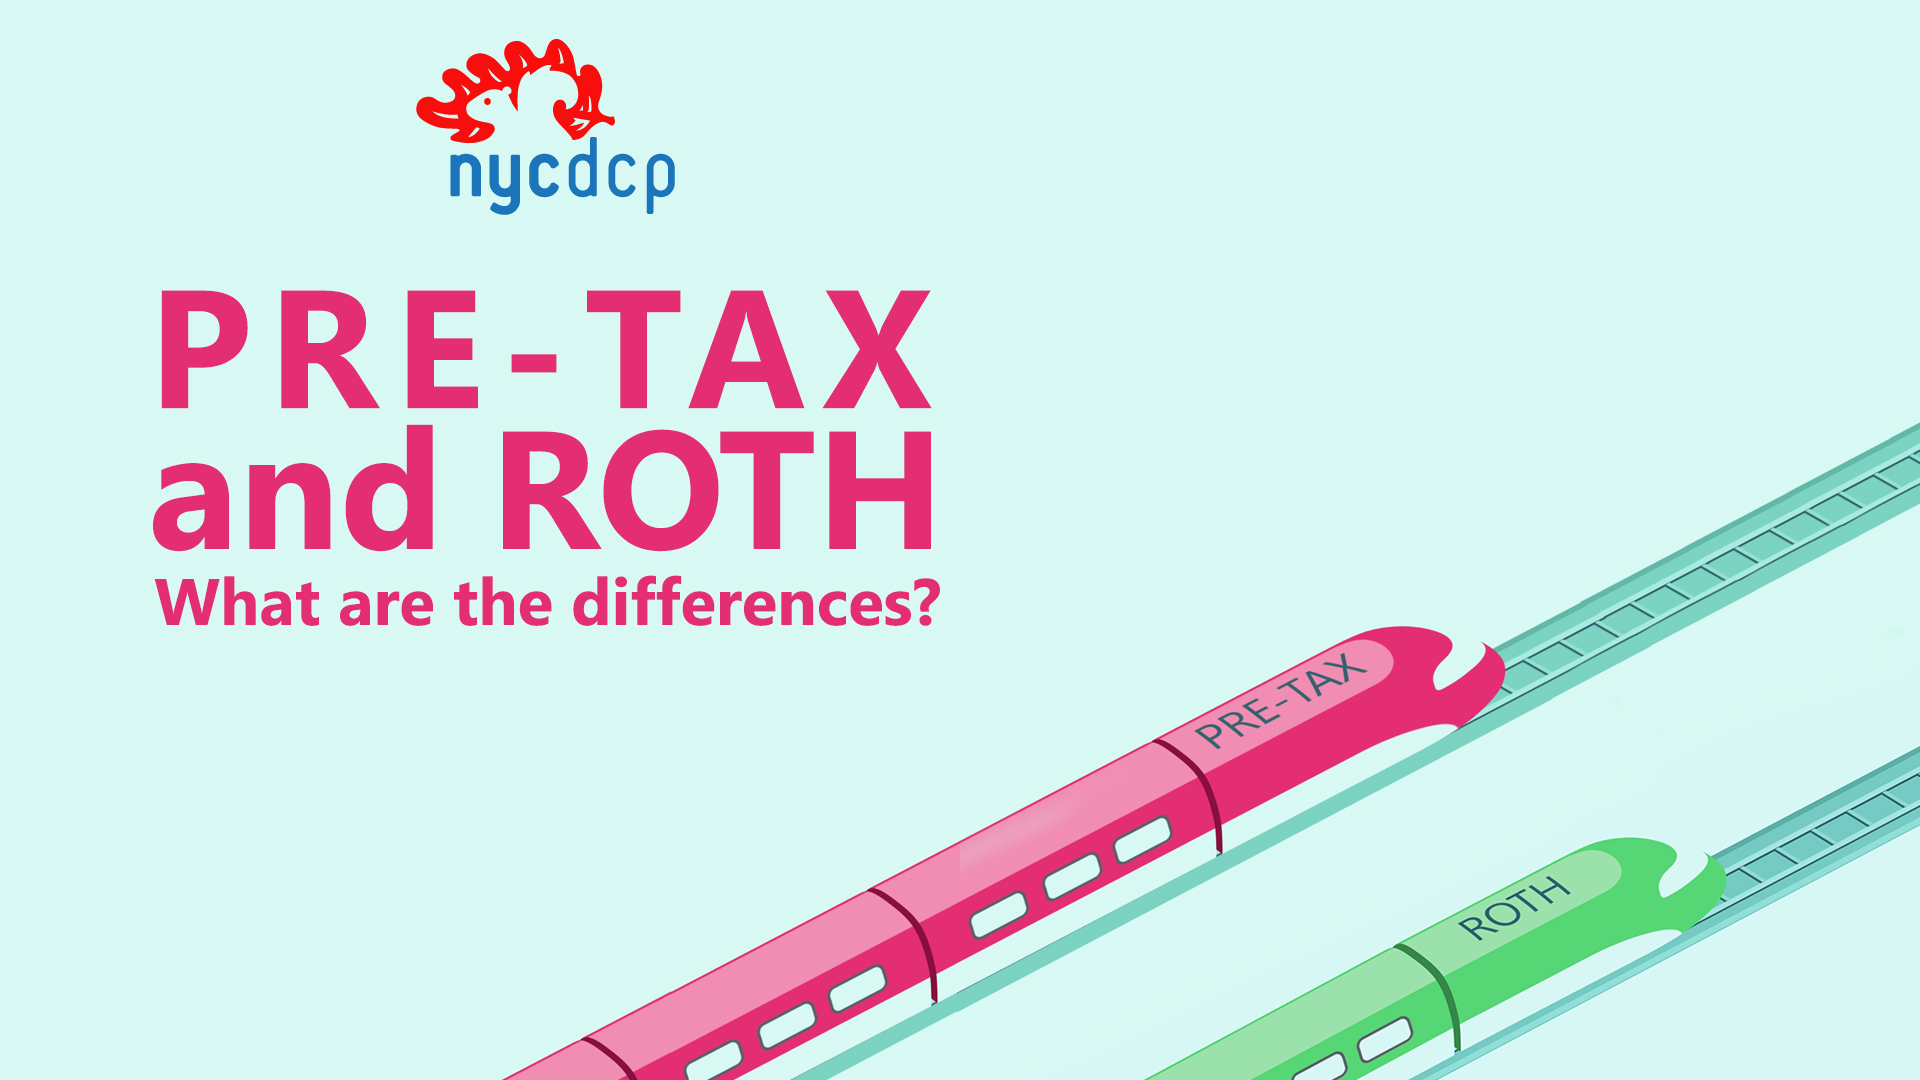 Differences between Pre-Tax and Roth